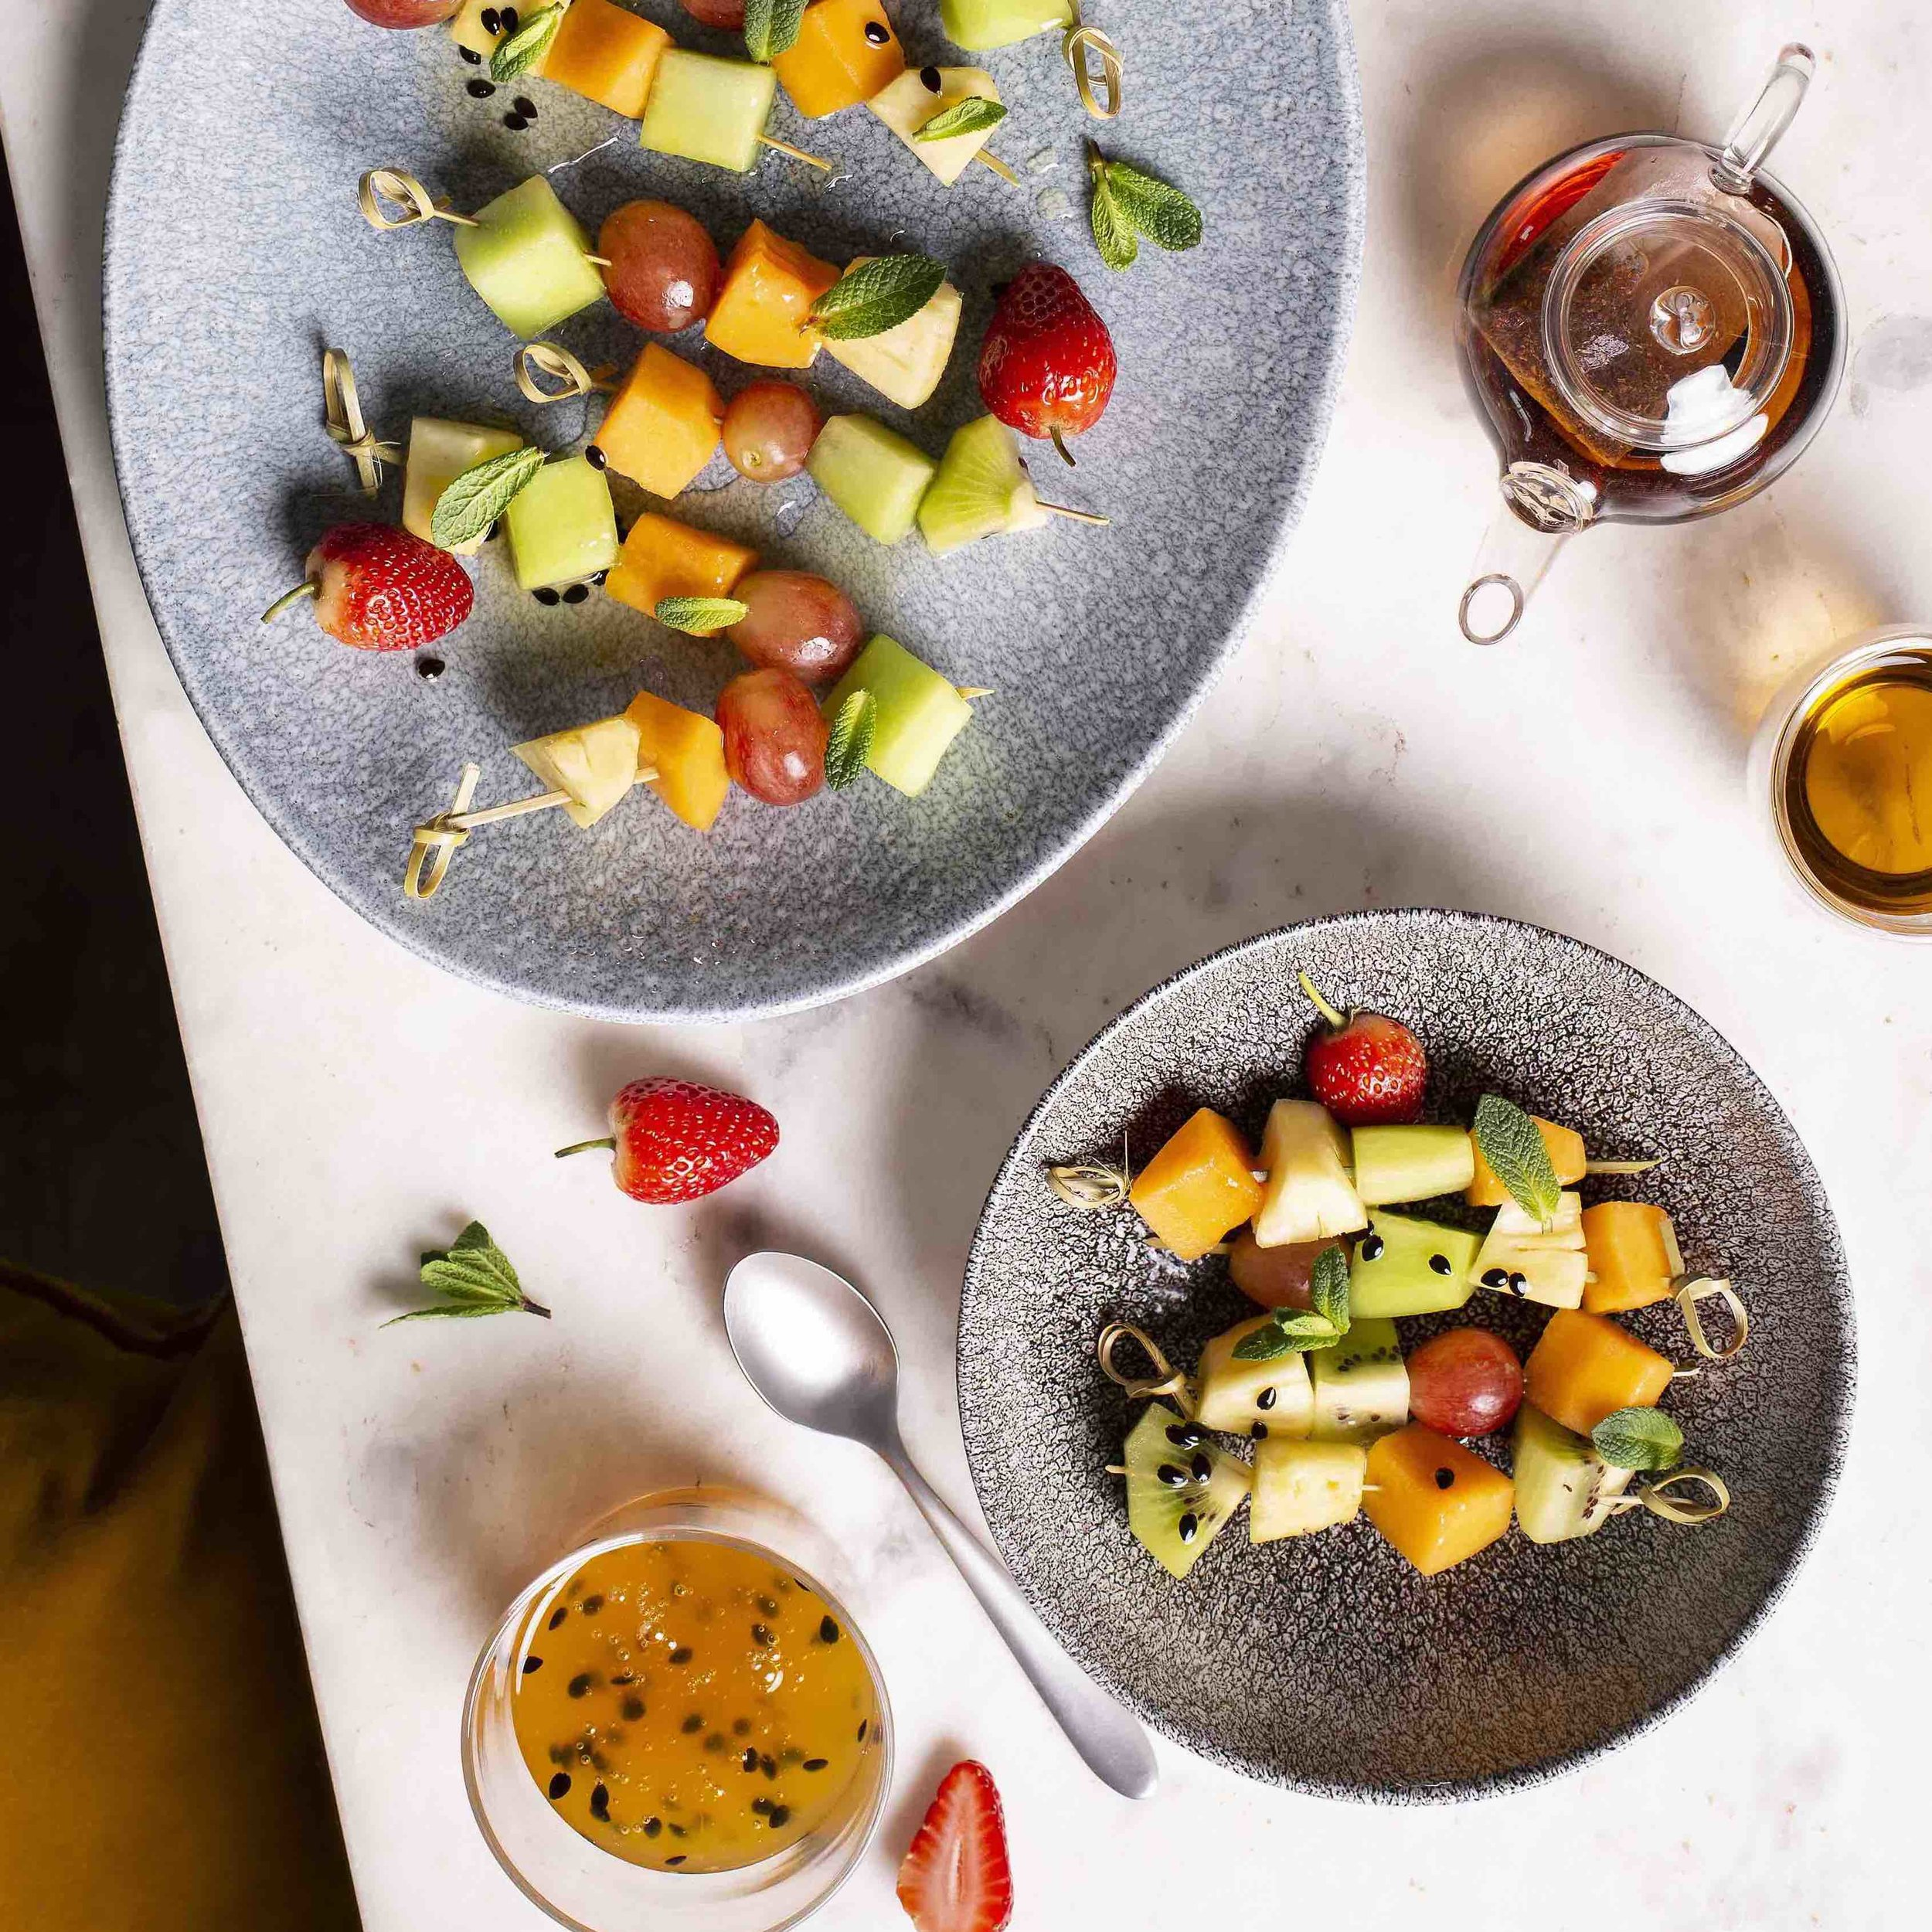 Seasonal Fruit KebabsR 440 – - Seasonal fruit kebabs with edible flowers and passion fruit drizzle